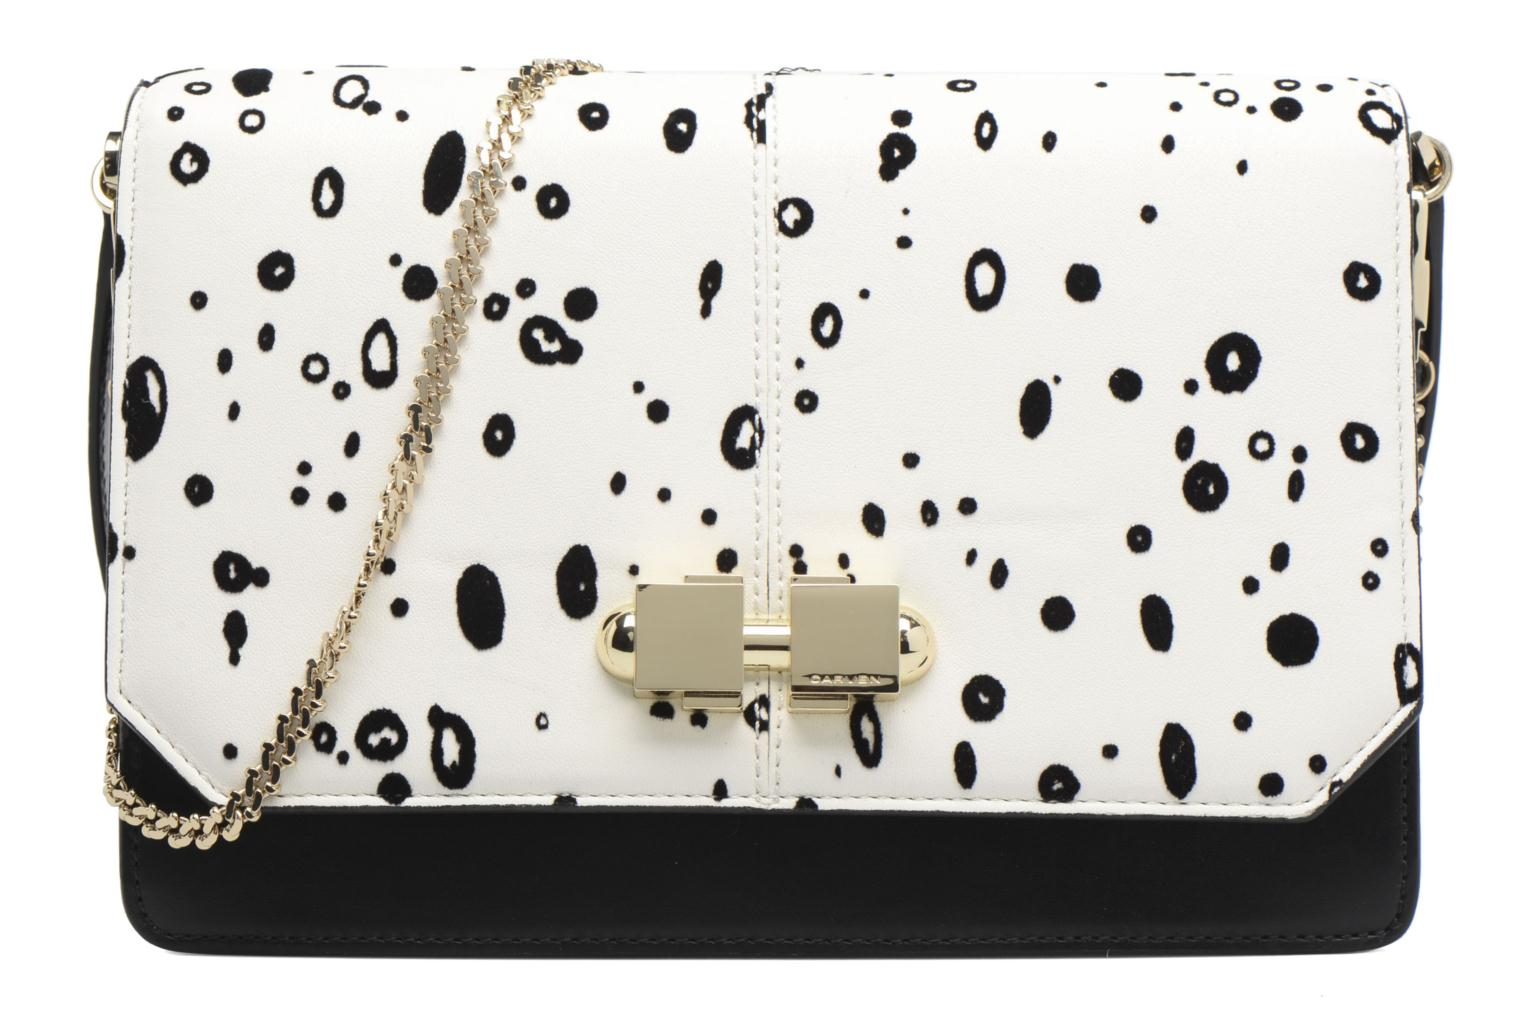 FULLJOY Crossbody Noir/blanc